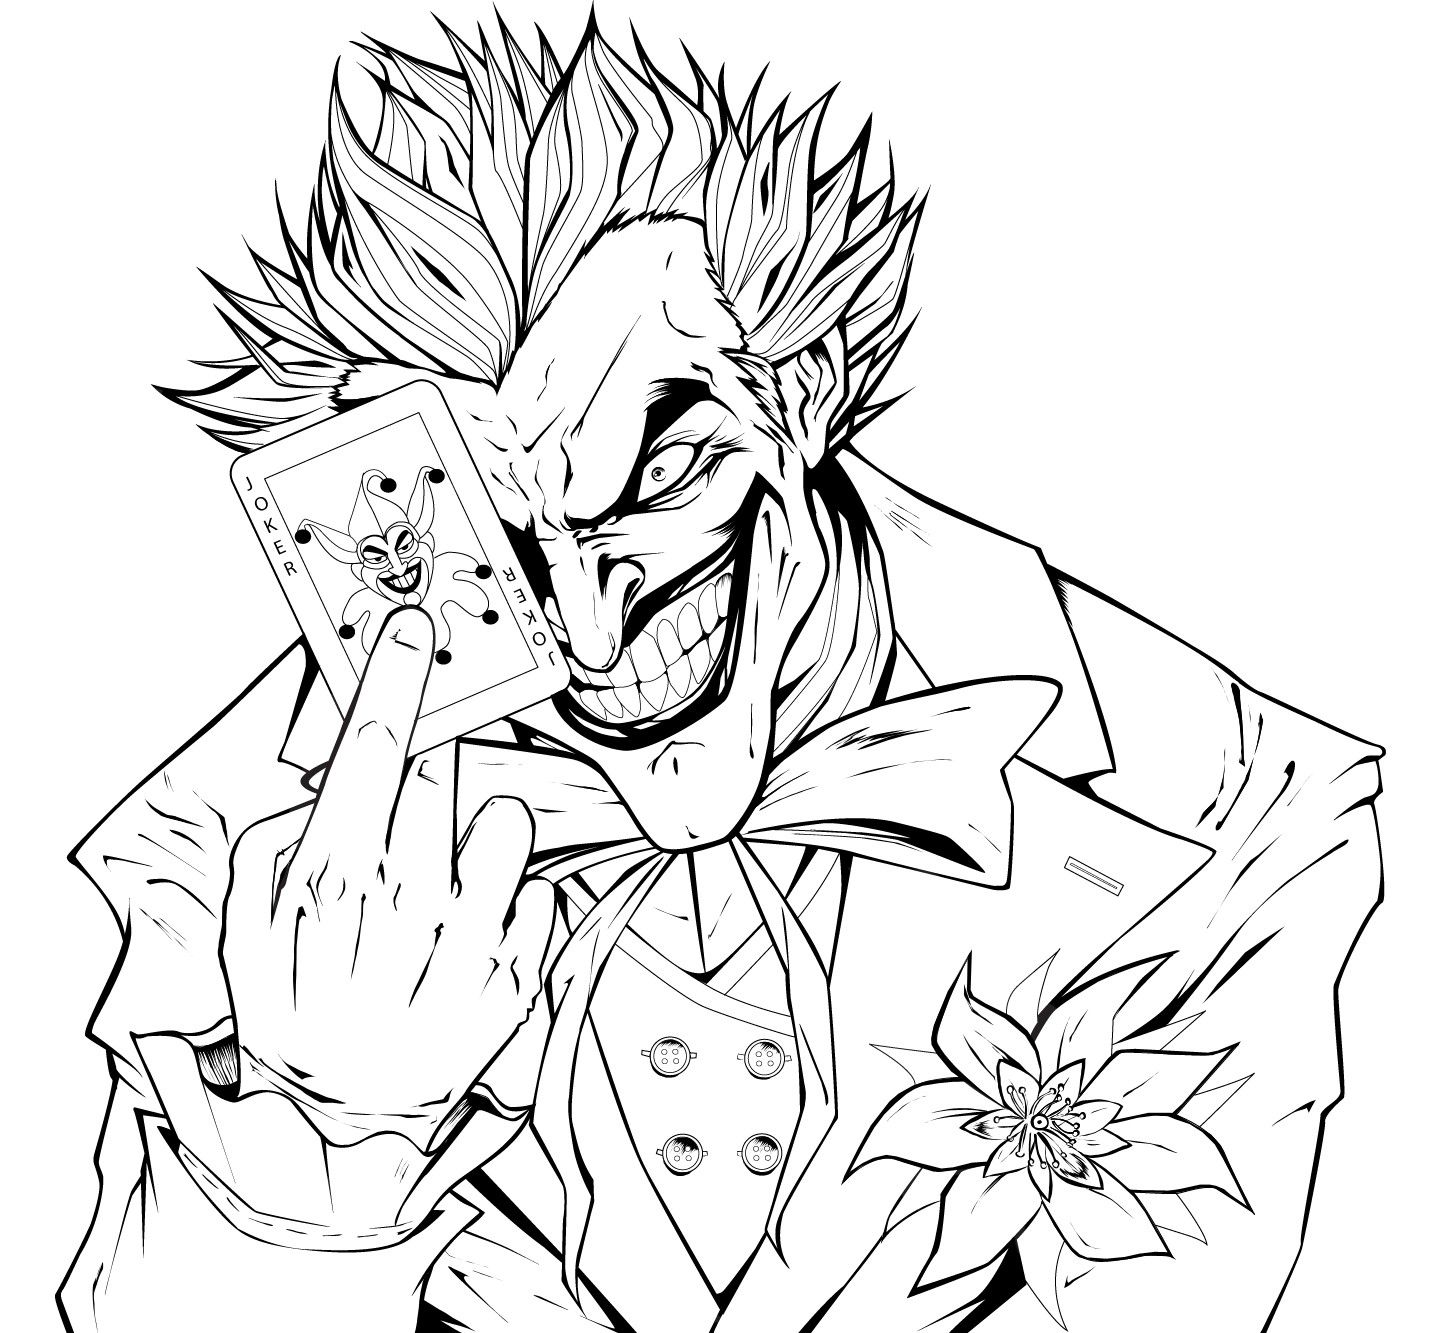 Joker Coloring Pages Printable My Image Sense Coloring Pages